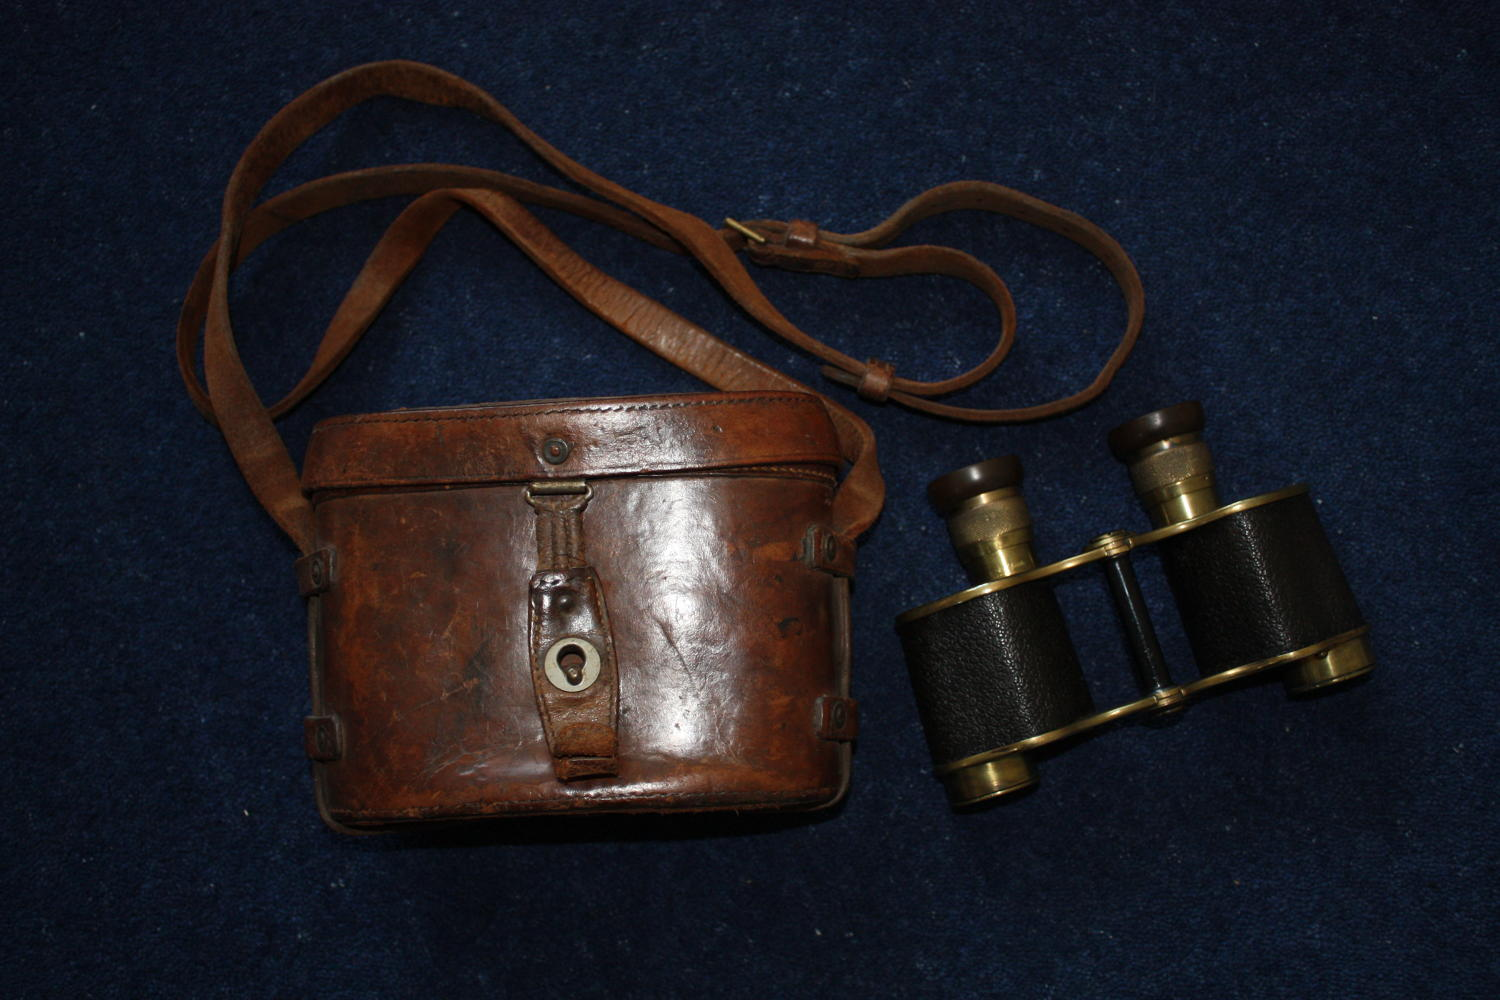 1917 dated WW1 British Army Officer's Binoculars in Leather case.